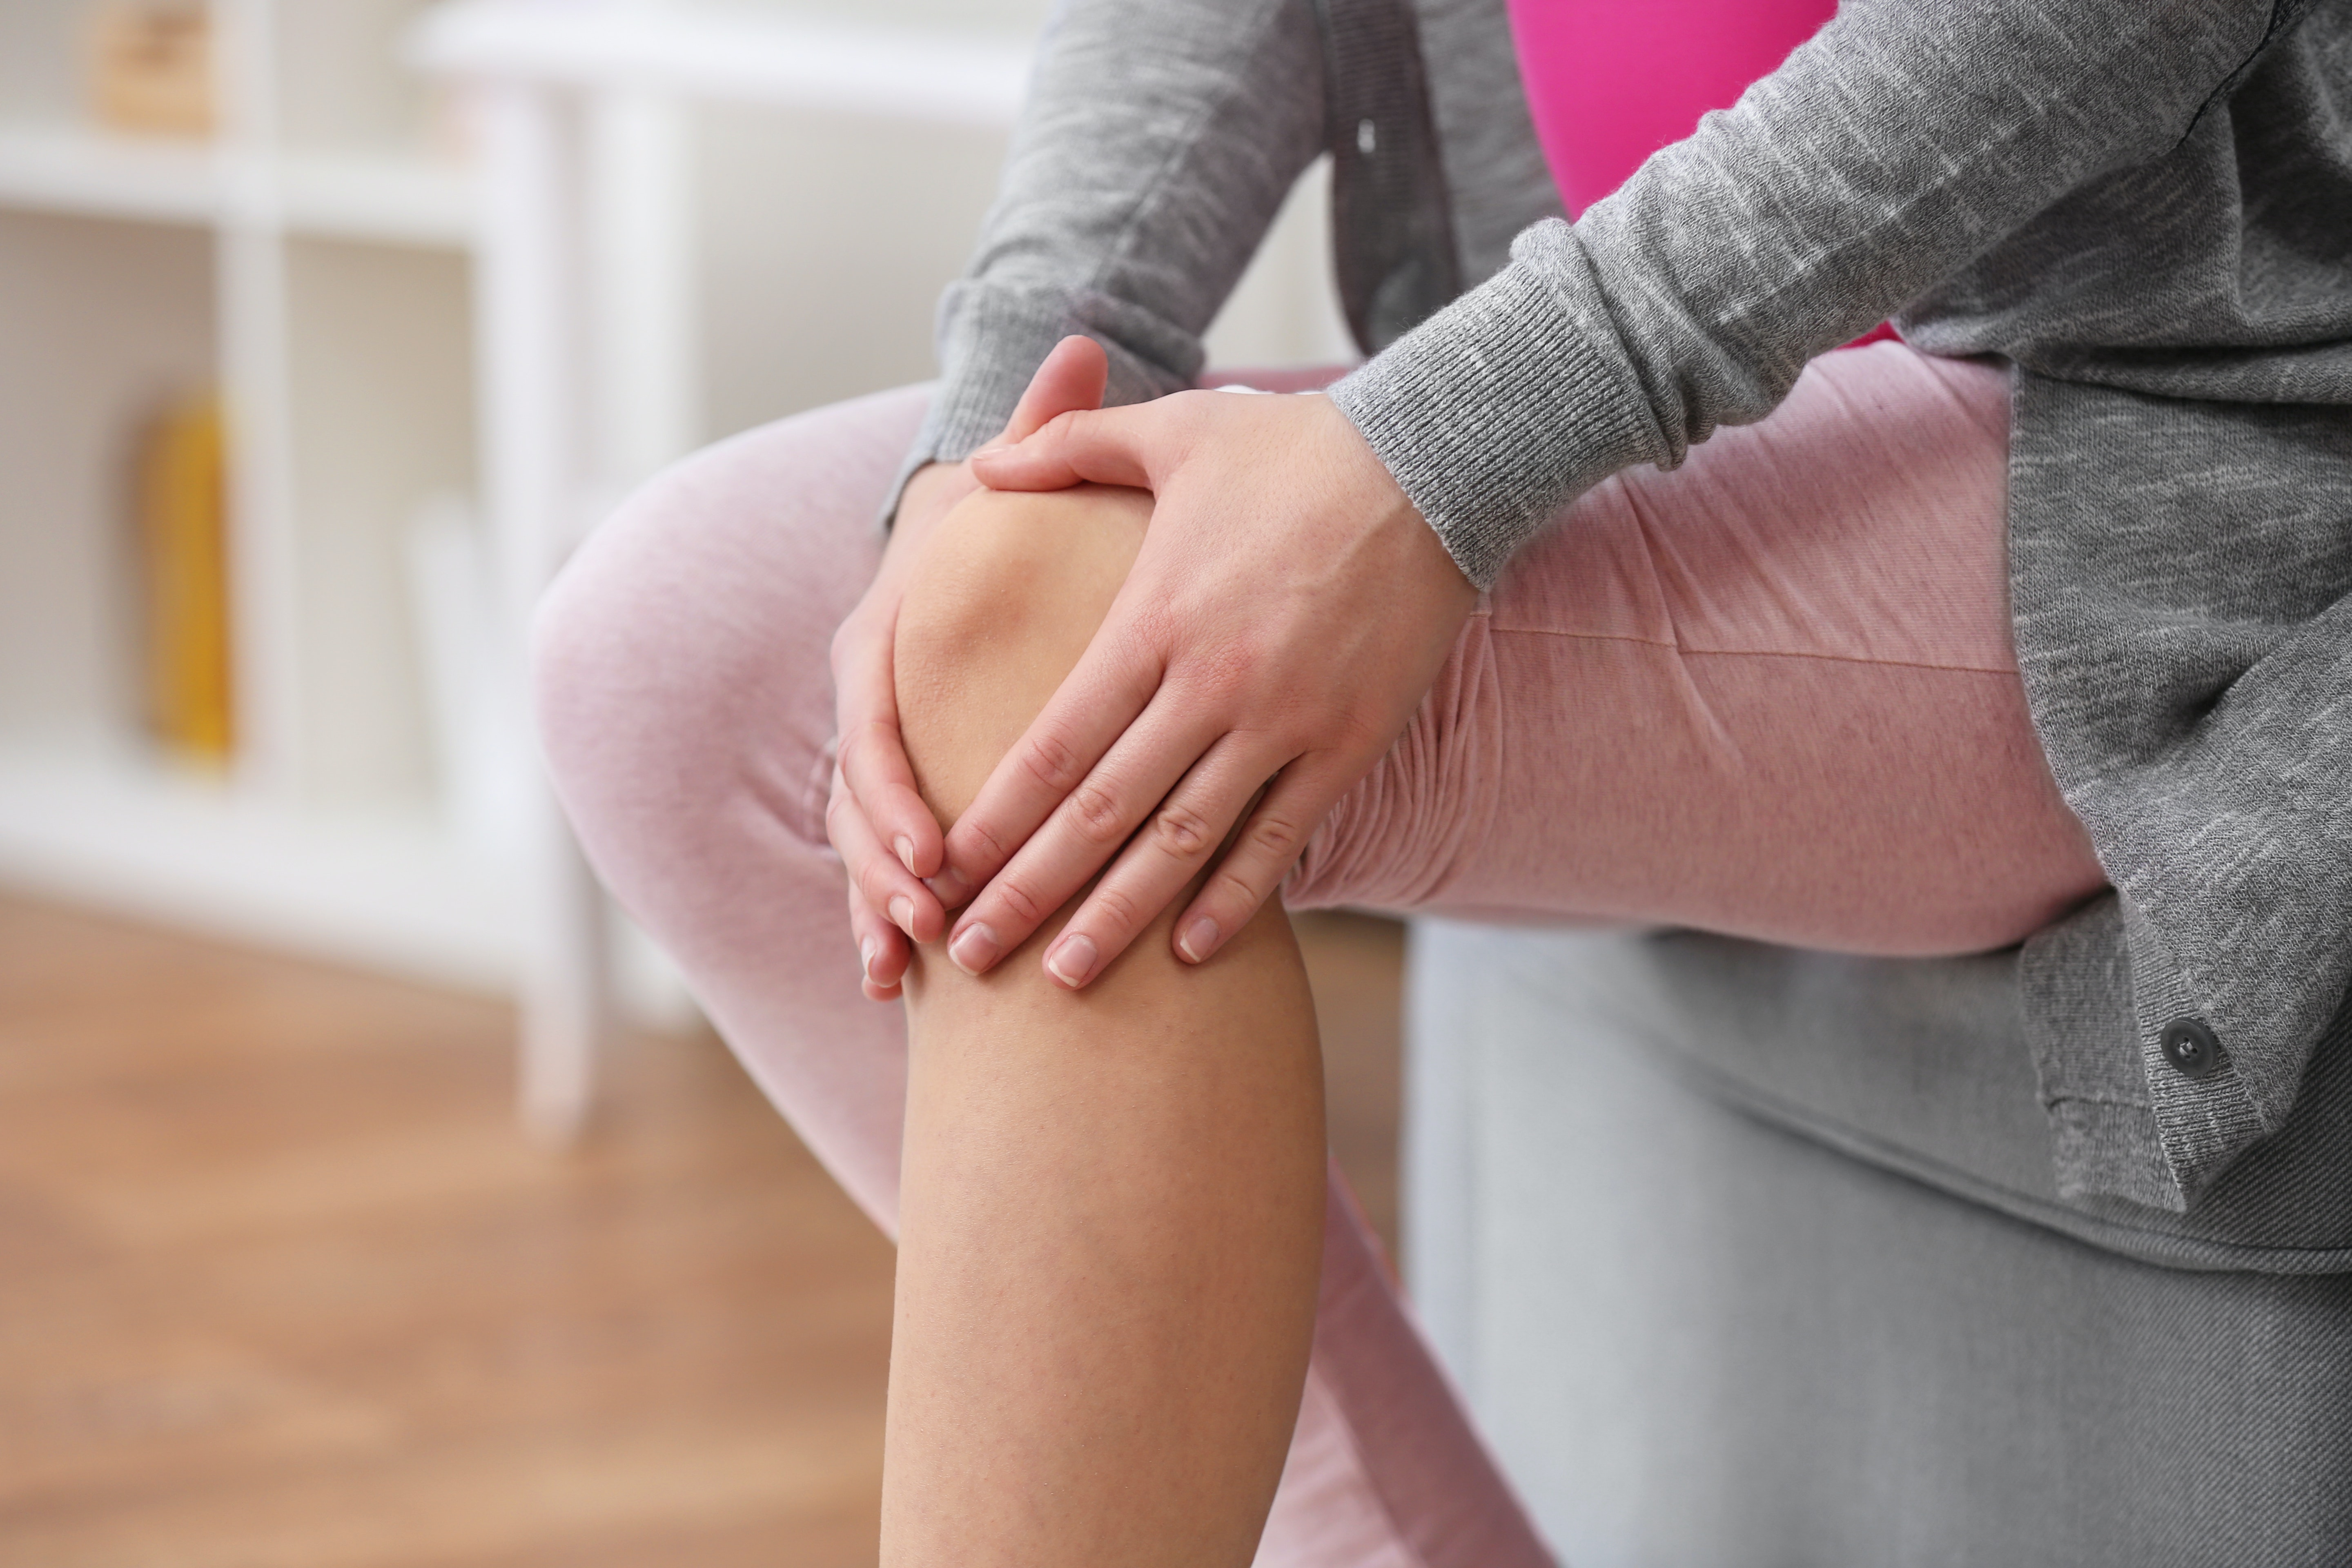 An image depicting a person suffering from joint pain symptoms